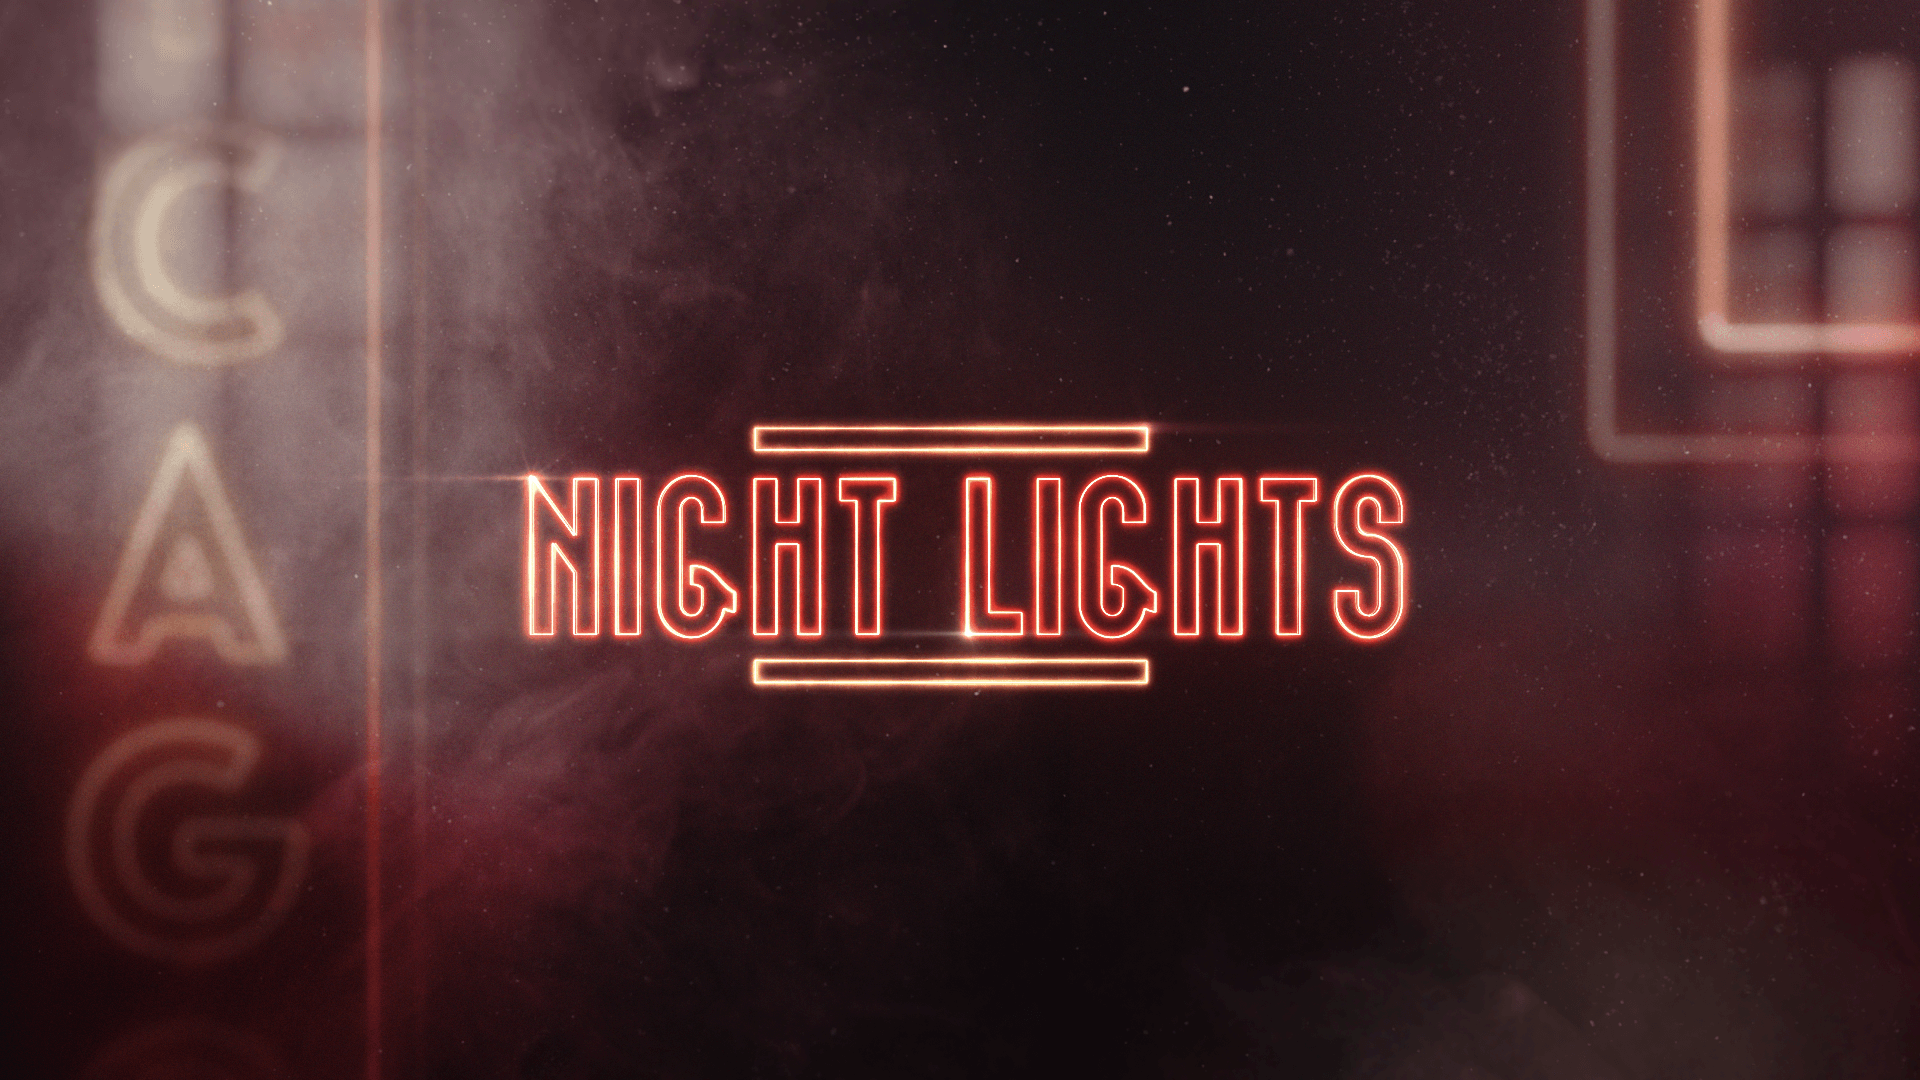 01_AMC_MOB_NIGHT_LIGHTS_TITLE_SML.png